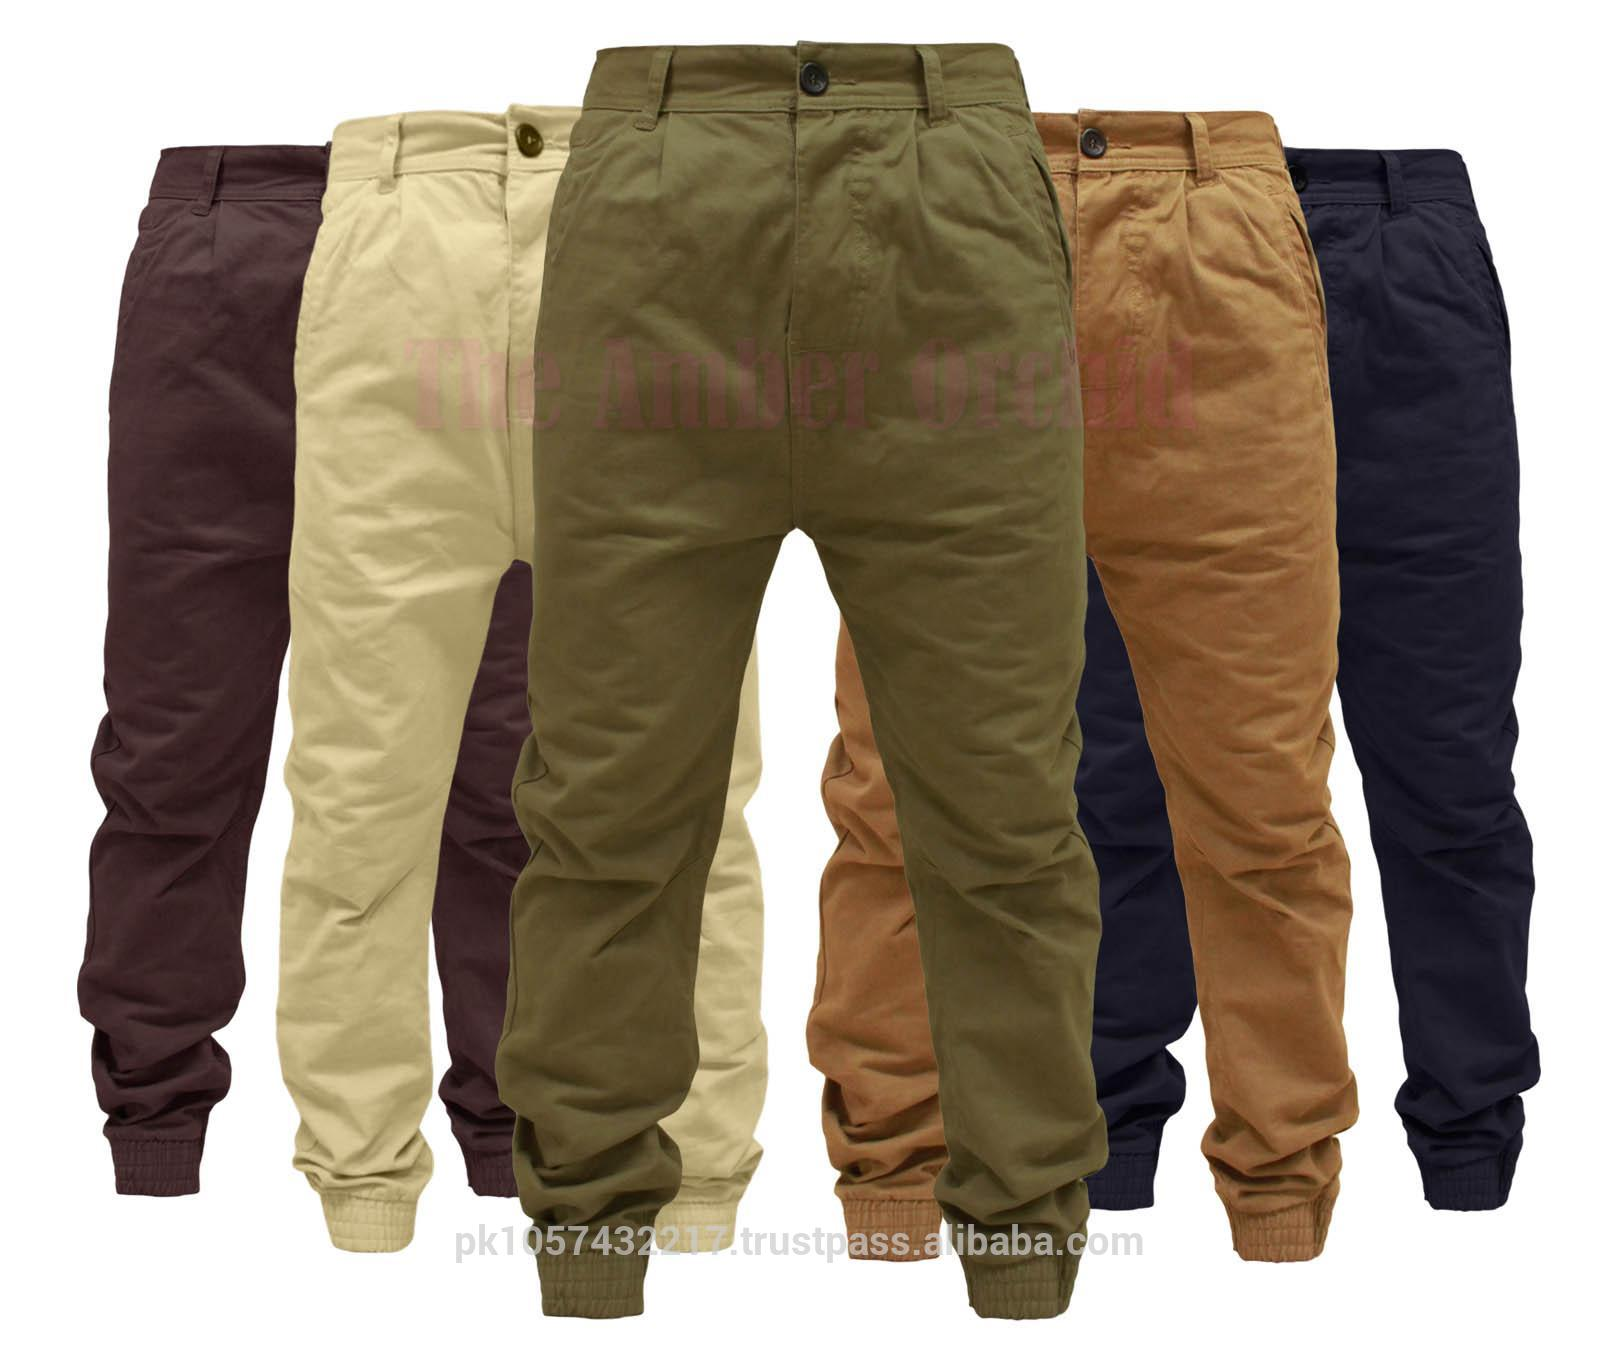 Chino Pants - 2014 New Arrival Men's Black Chino Jogger Pant ...